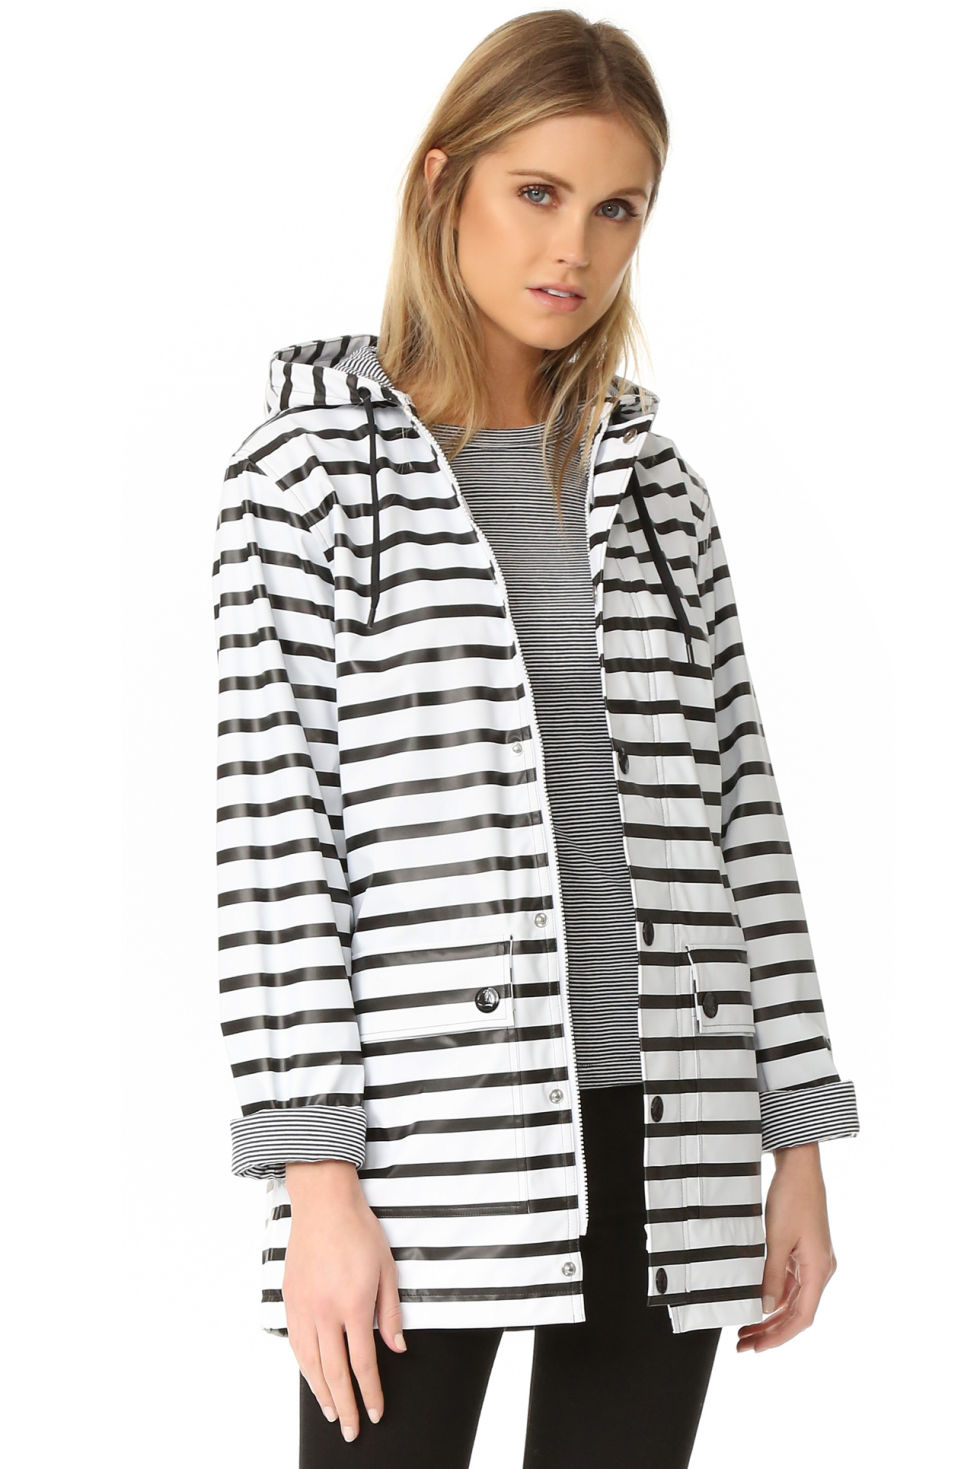 15 cute spring raincoats - best raincoats for women MFBQKHO